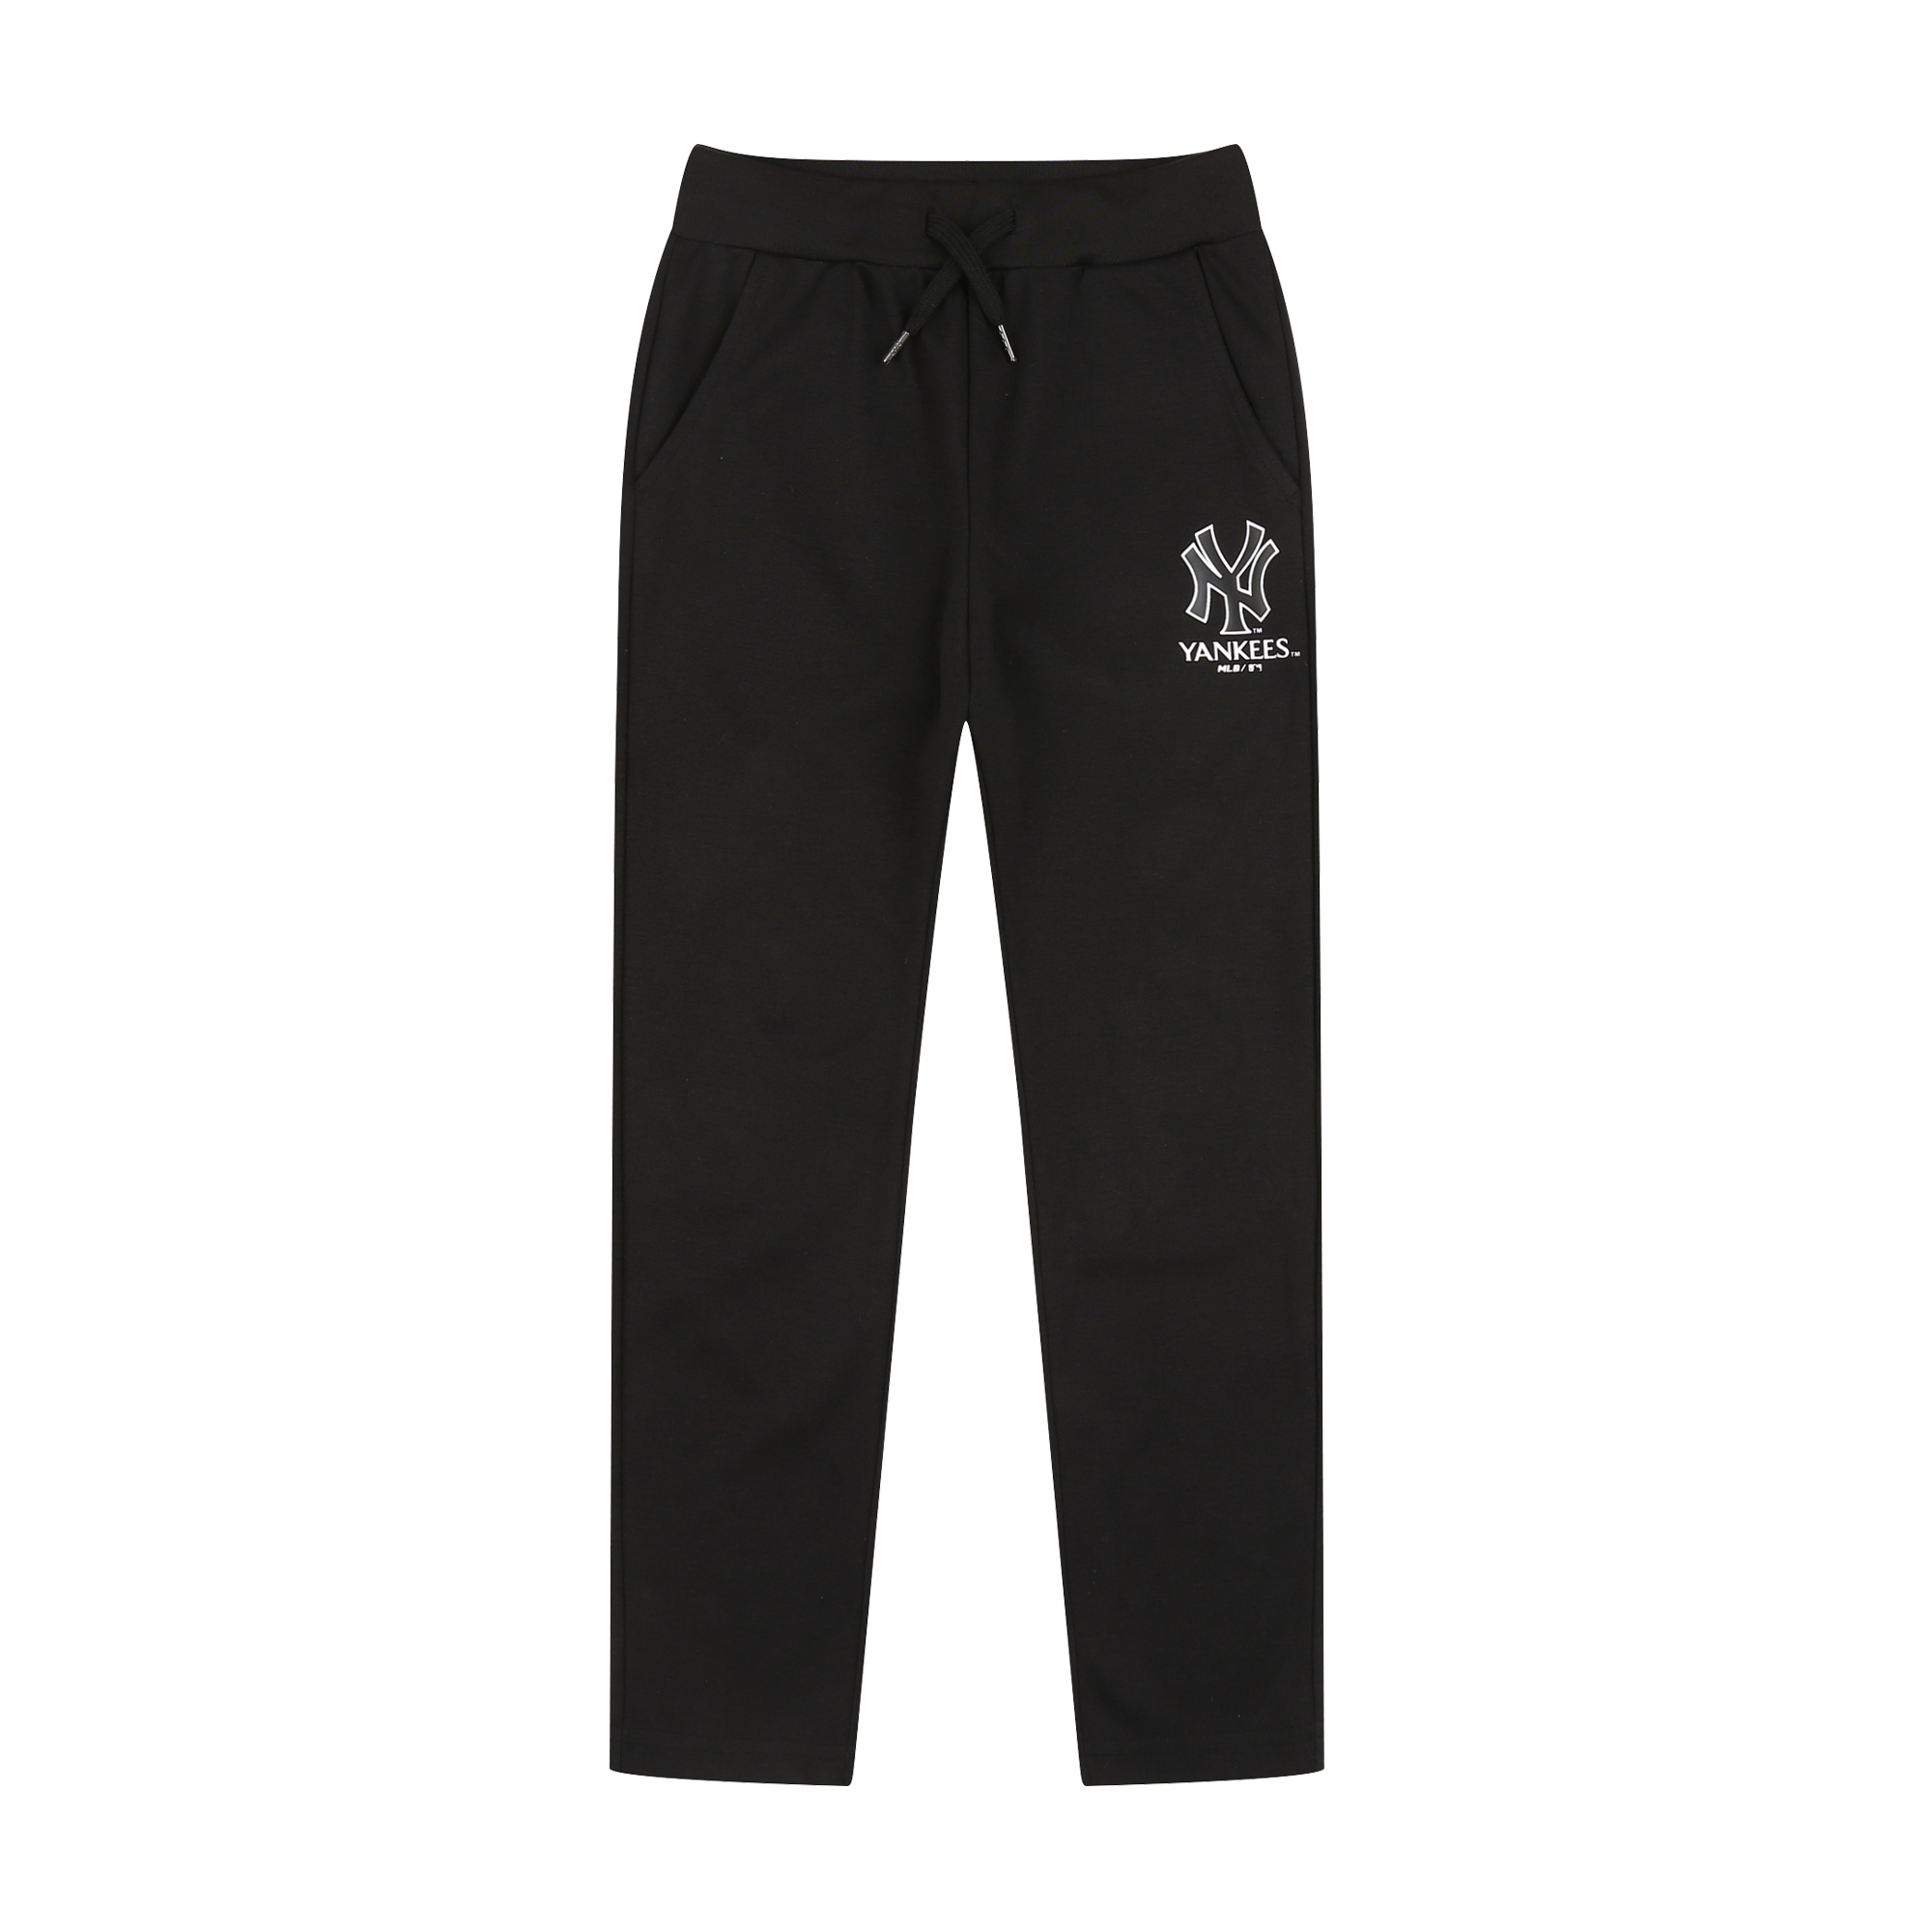 NEW YORK YANKEES UNISEX LOGO POINT TRAINING PANTS